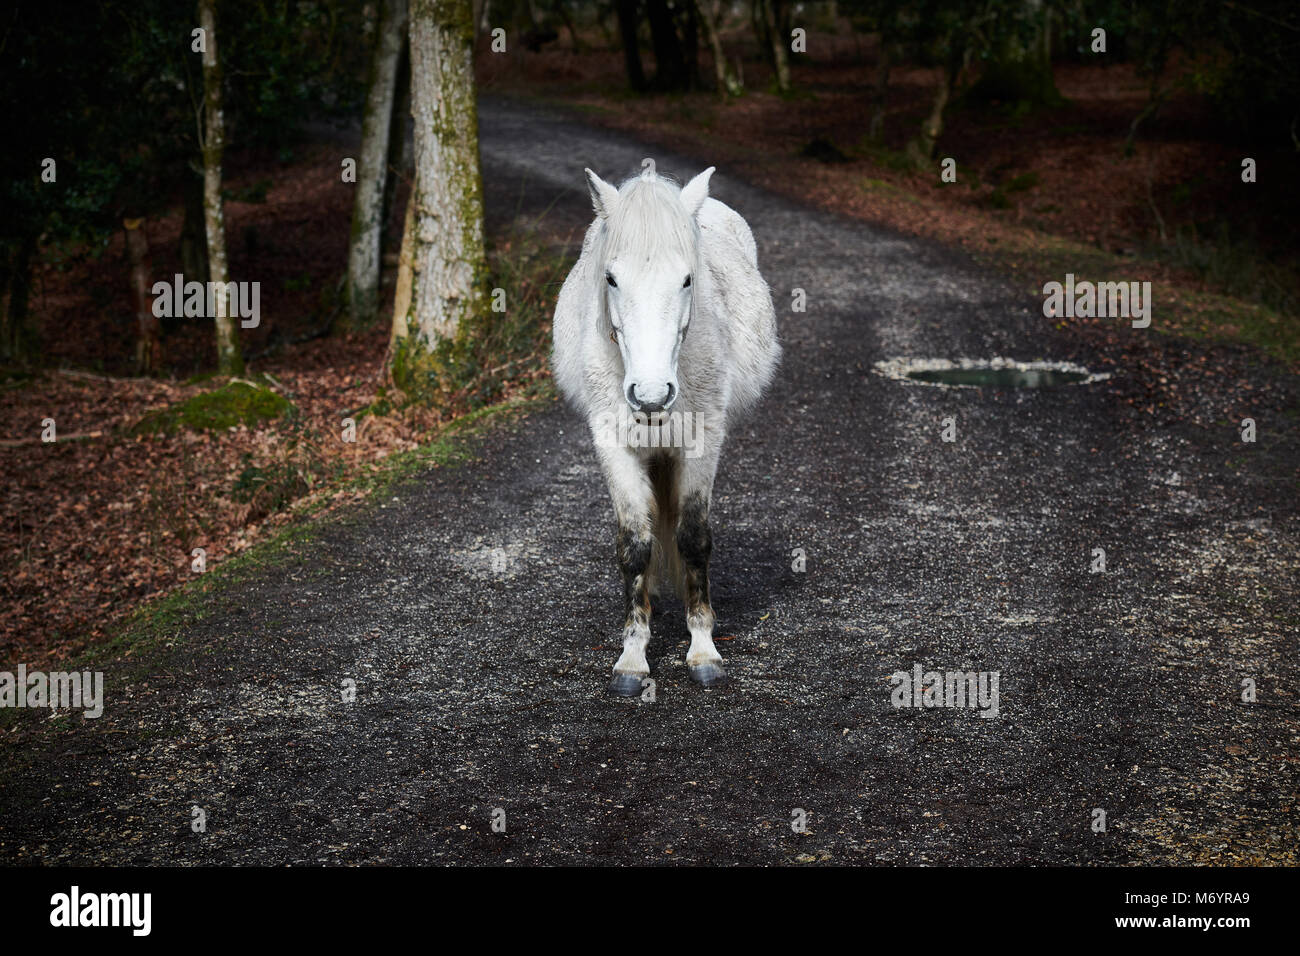 A White Horse standing head on in the New Forest. Contrasting heavily with a darker woodland background. - Stock Image